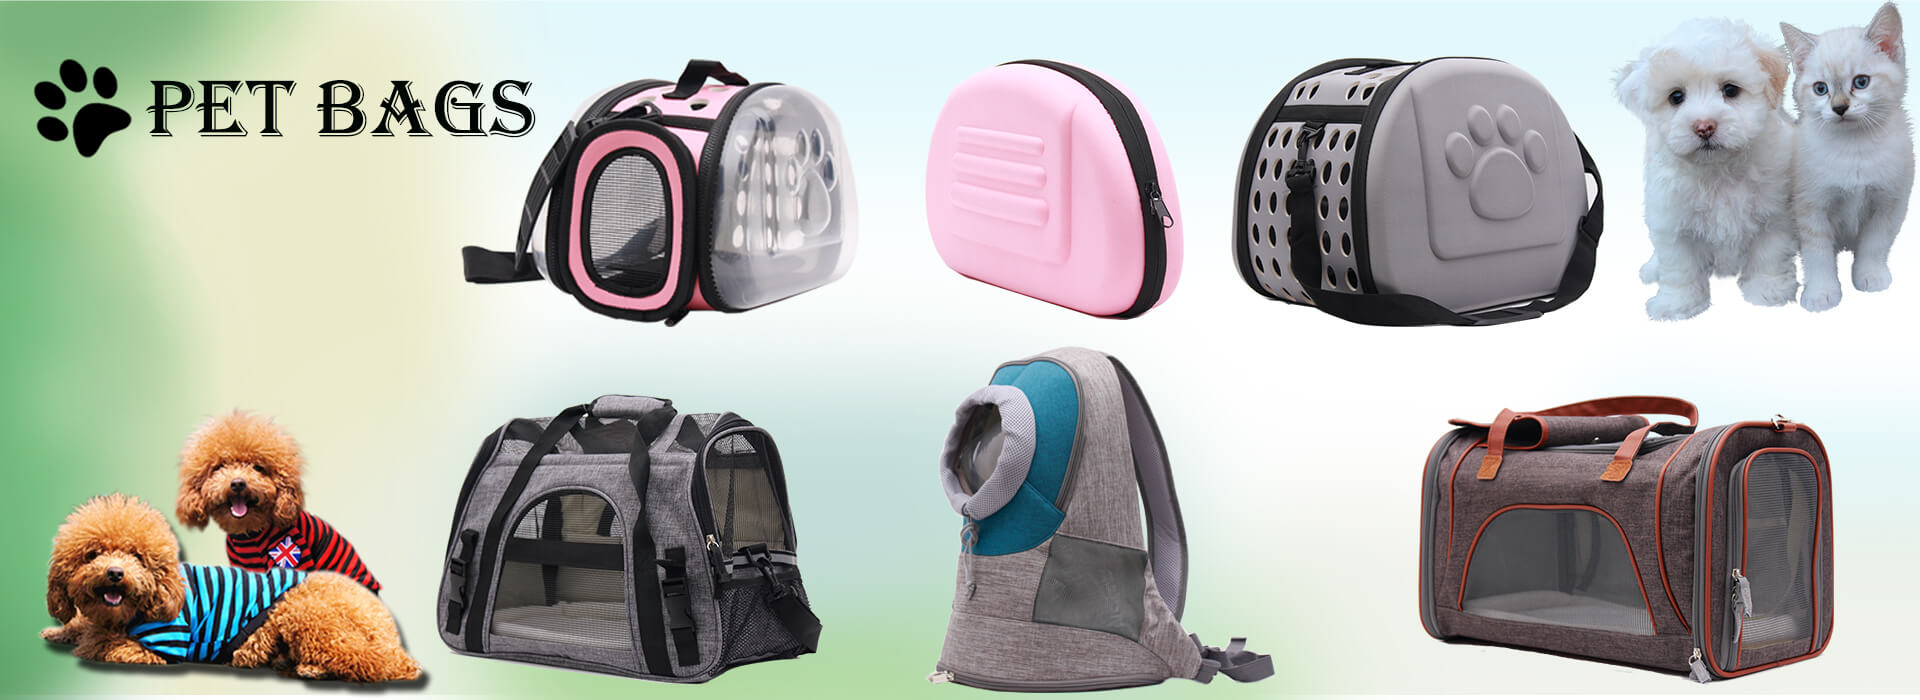 Pet bags dog backpack cat carrier